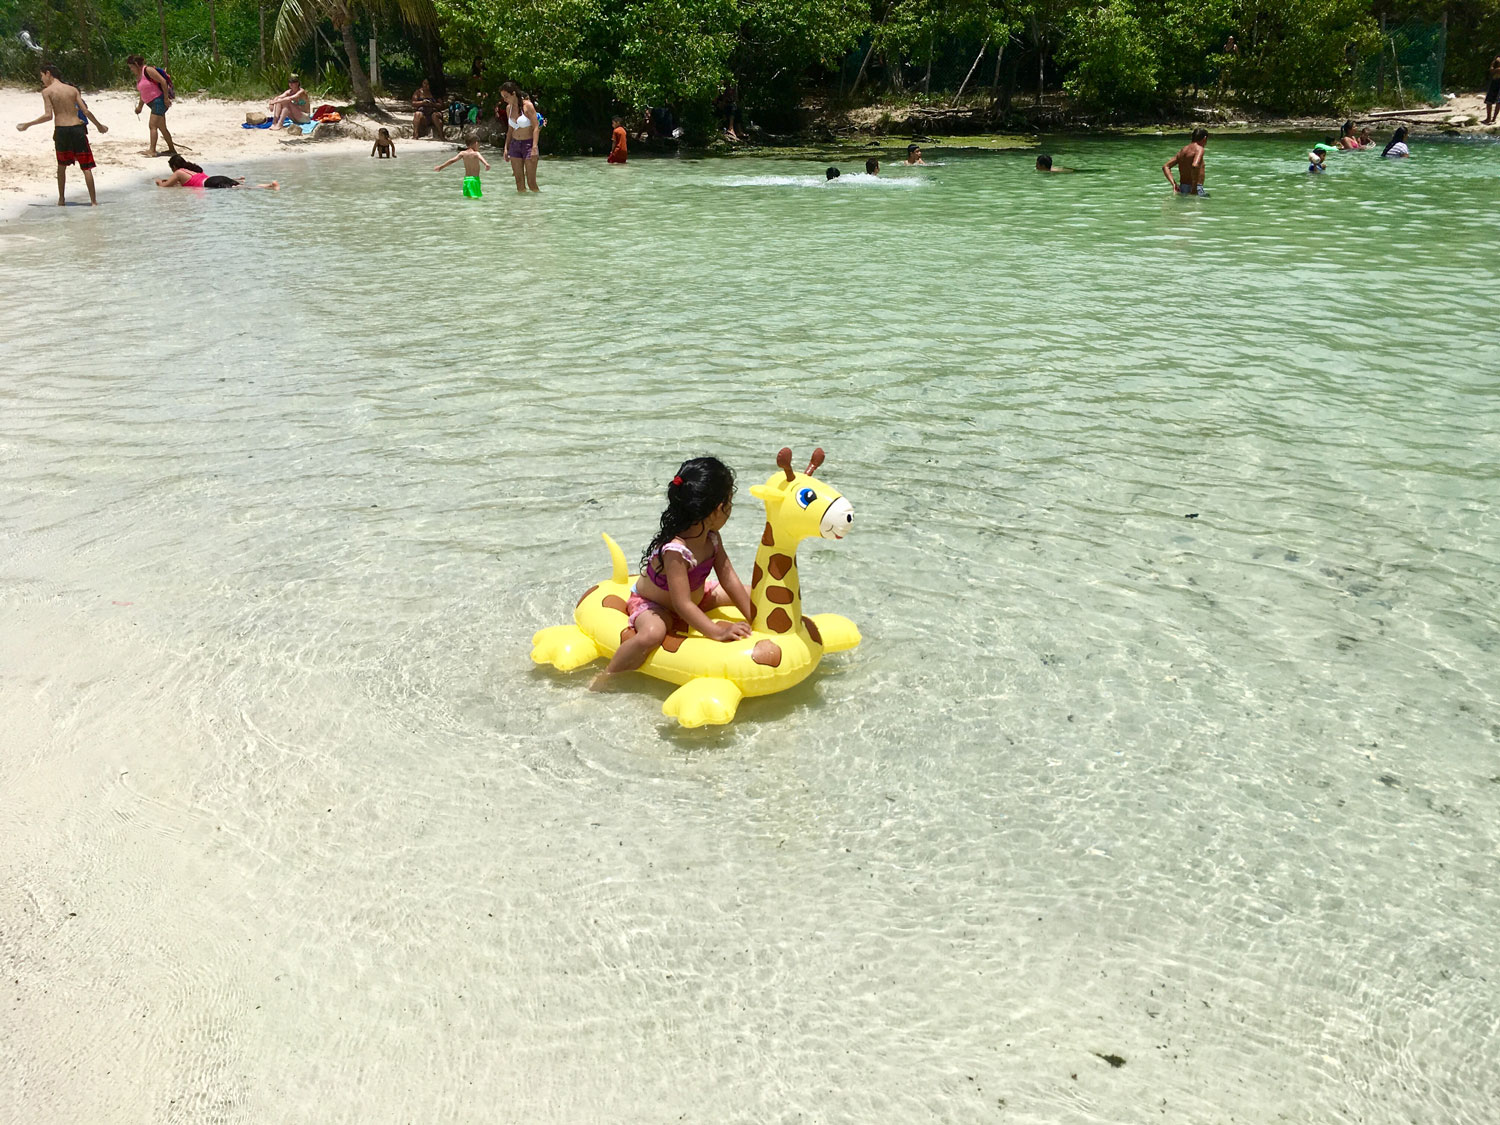 Children love playing in the shallow cenote while teenagers (on the right) prefer jumping in the deeper cenote.